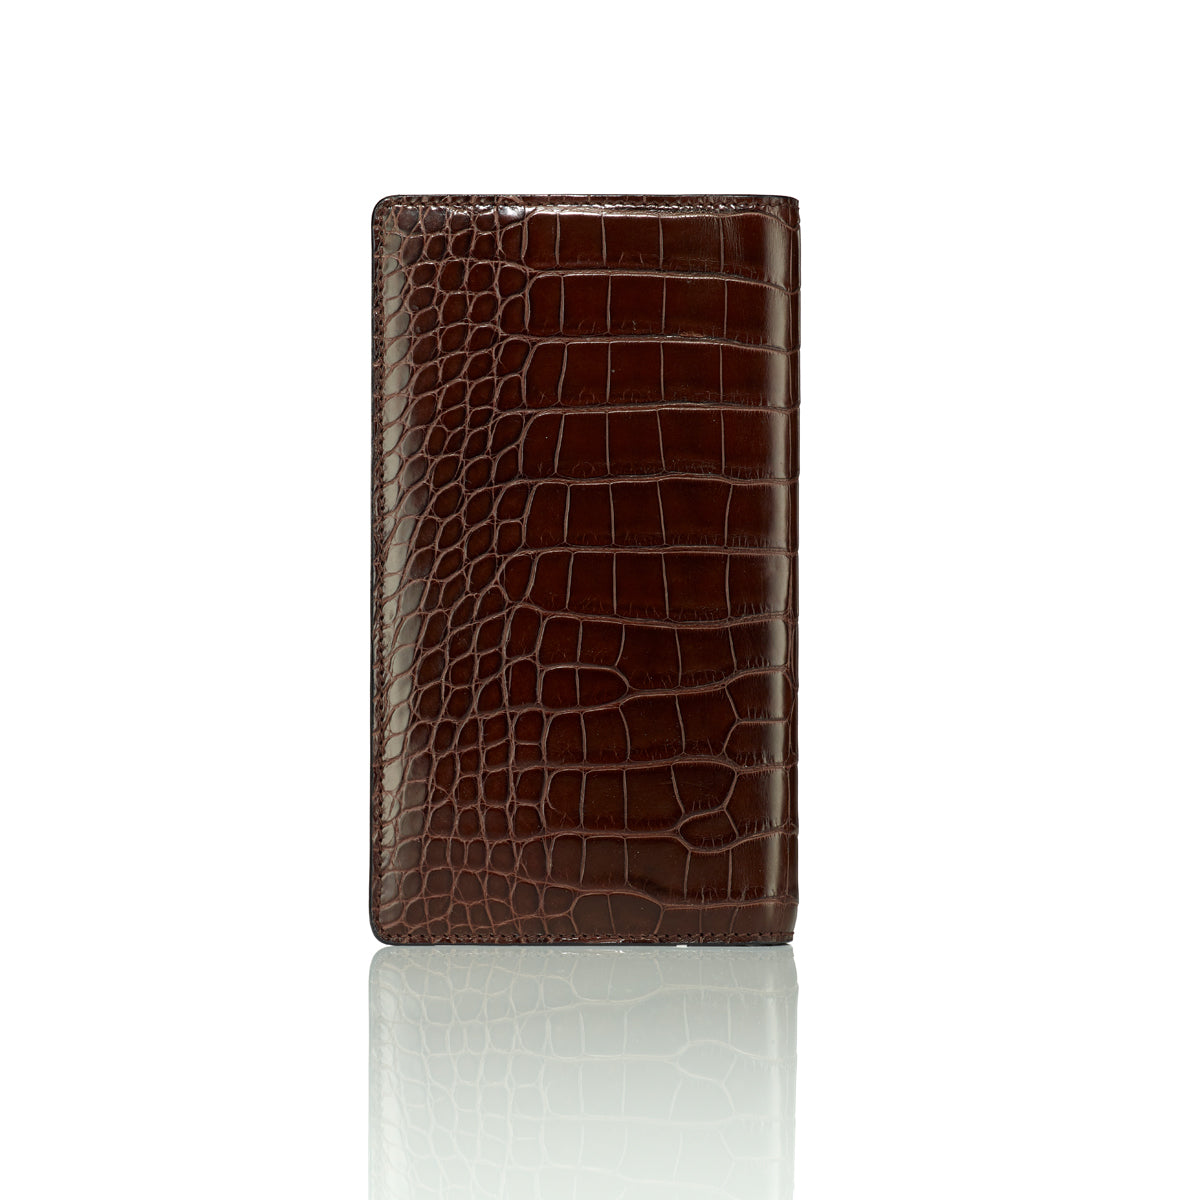 Elongated Wallet - Brown Alligator